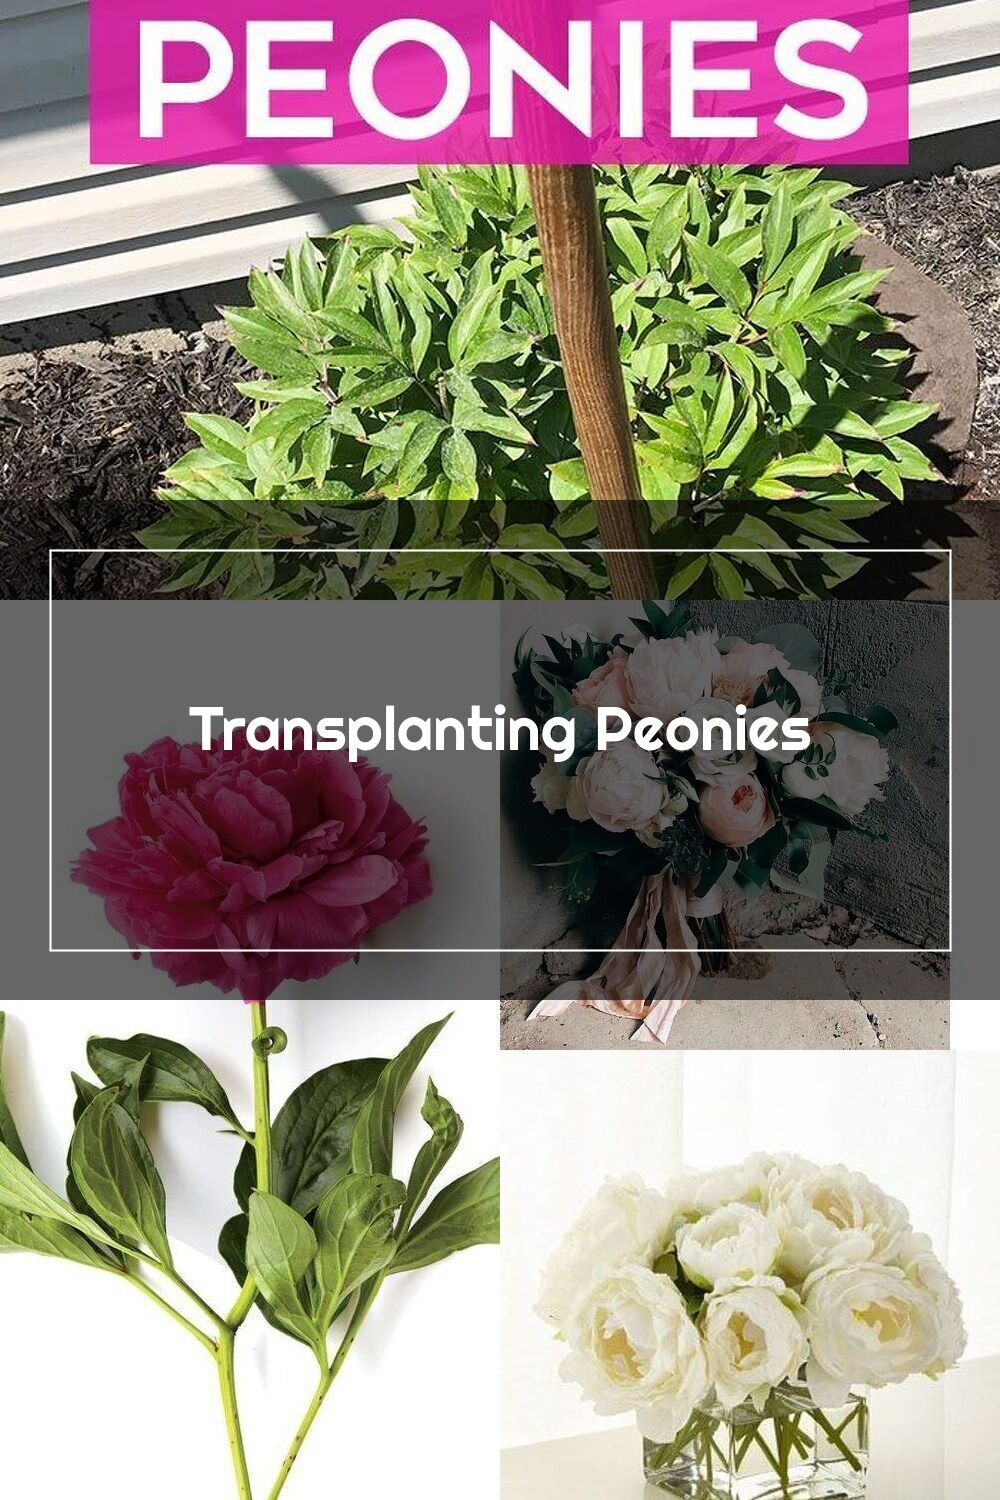 Transplanting Peonies How To Transplant Peonies Peonies Peoniesgarden In 2020 Peonies Peonies Garden Plants